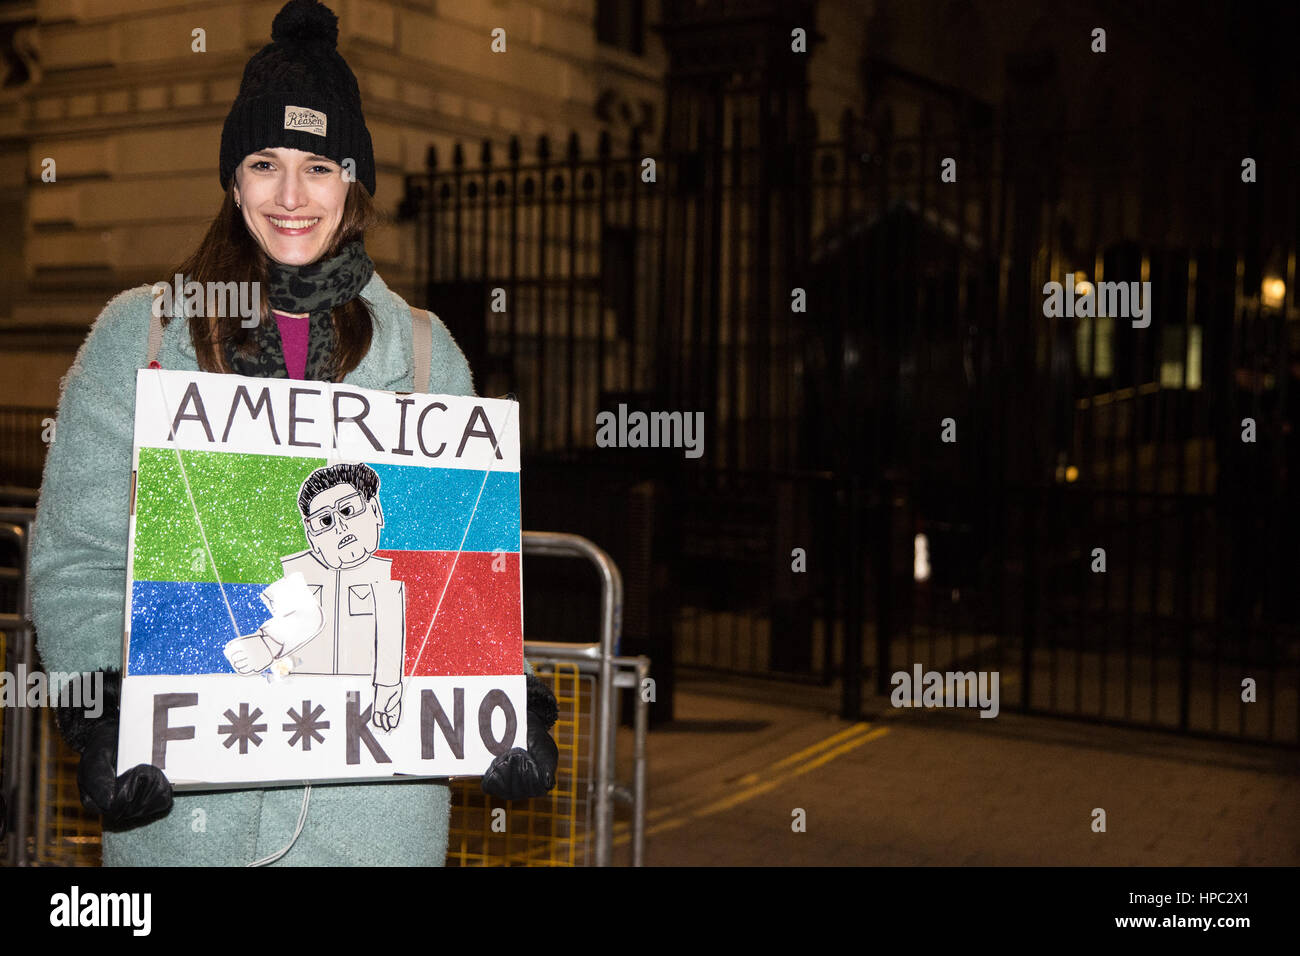 London, UK. 20th February, 2017. A demonstrator holds a sign outside Downing Street follwing the Stop Trump rally Stock Photo